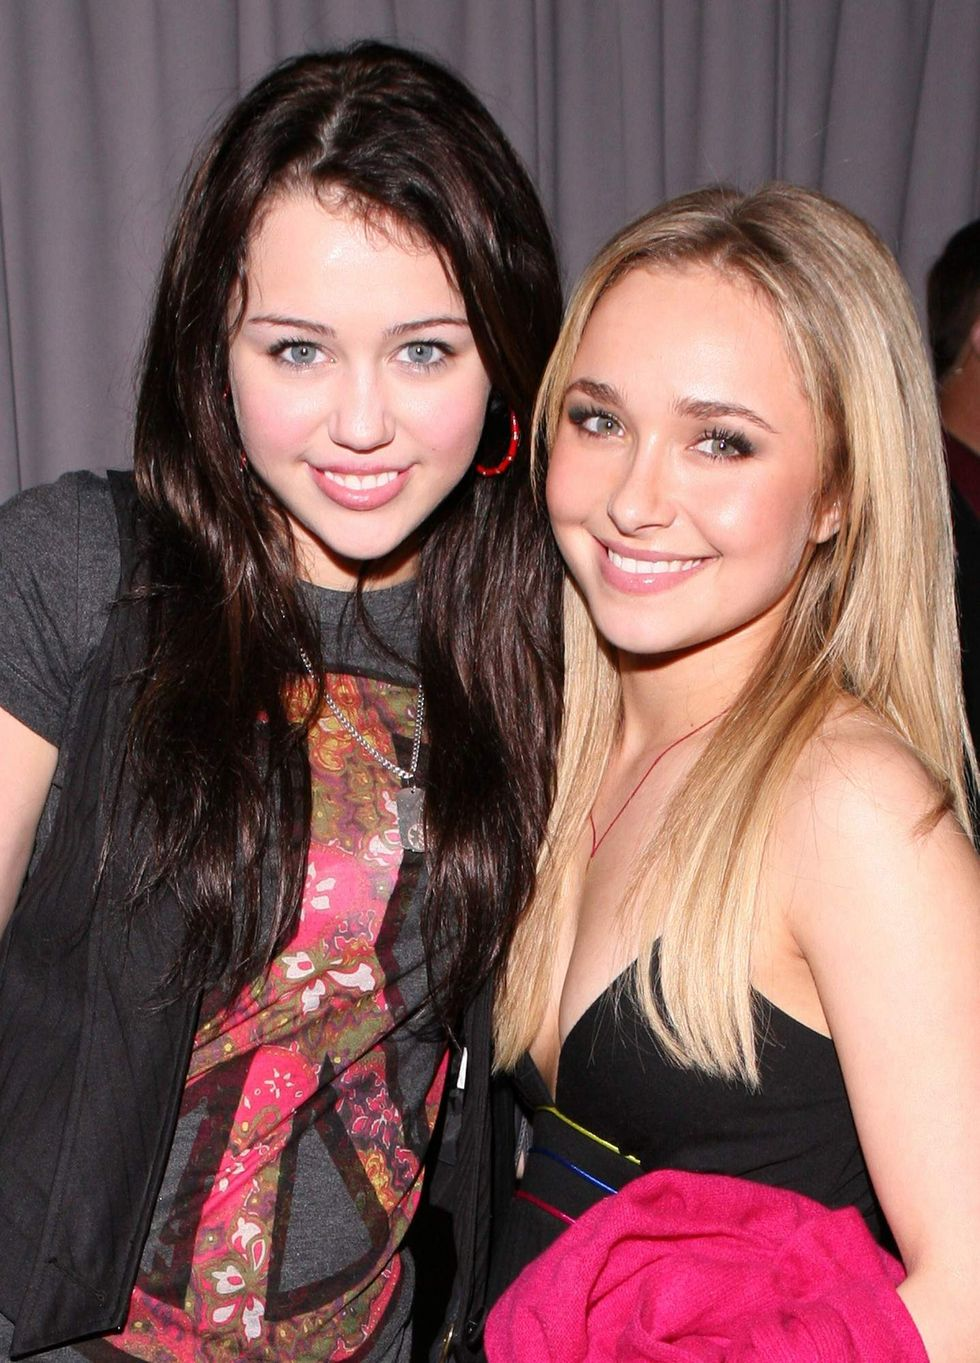 hayden-panettiere-and-miley-cyrus-backstage-candids-during-the-taping-of-randy-jackson-01